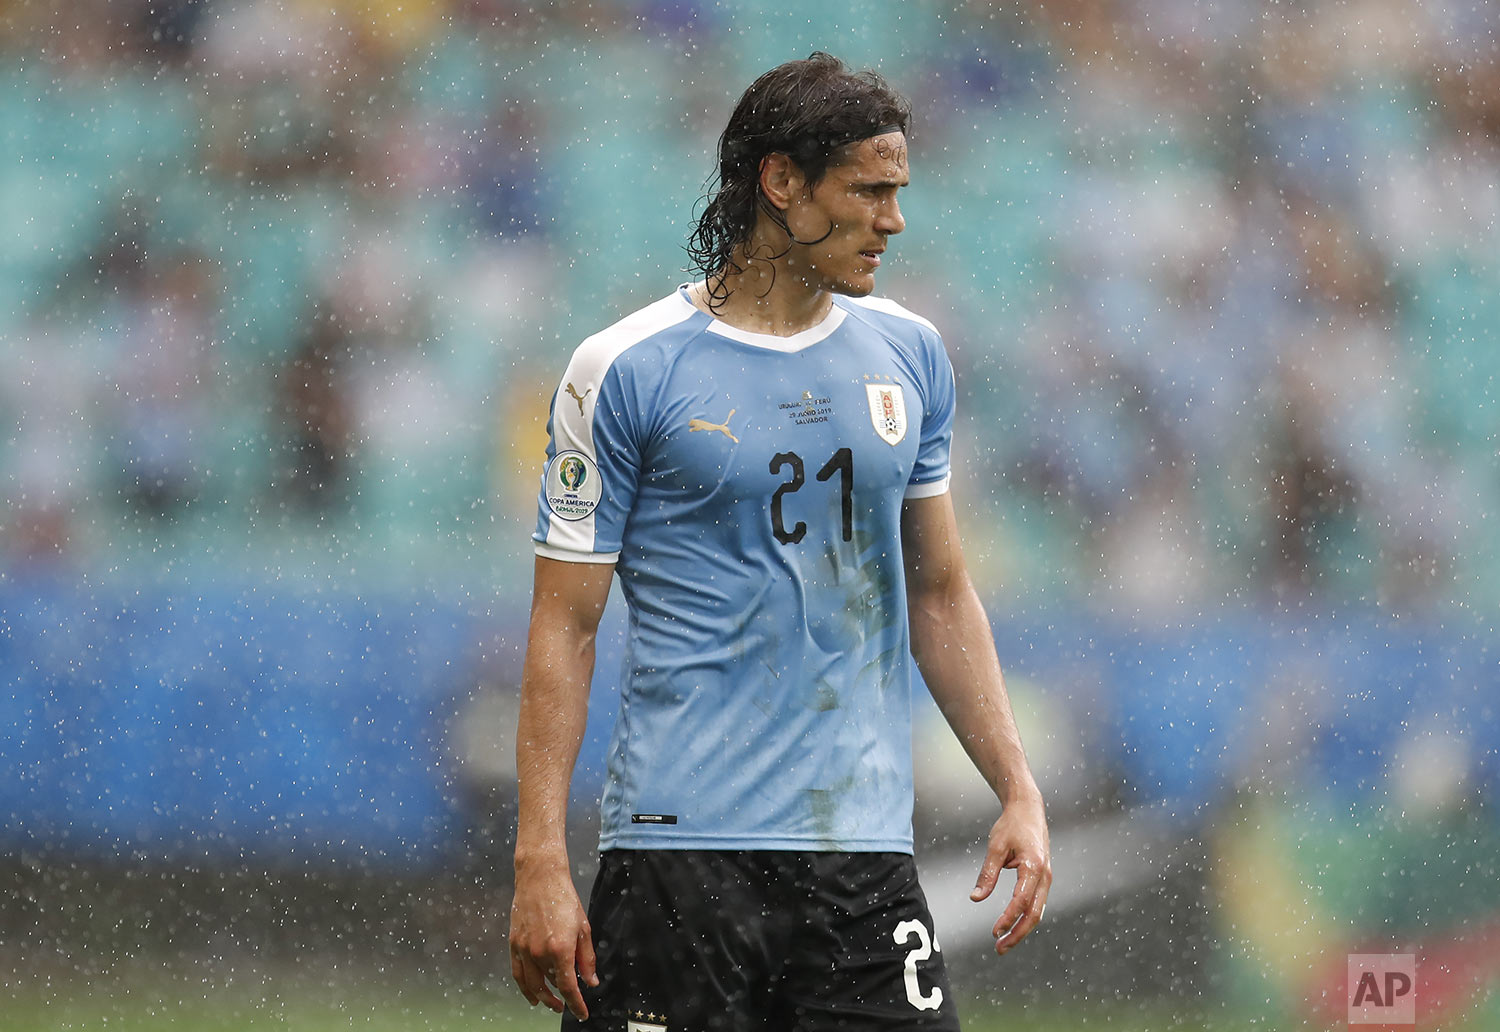 Uruguay's Edinson Cavani stands in the rain  during a Copa America quarterfinal soccer match against Peru at  Arena Fonte Nova in Salvador, Brazil, Saturday, June 29, 2019. (AP Photo/Natacha Pisarenko)